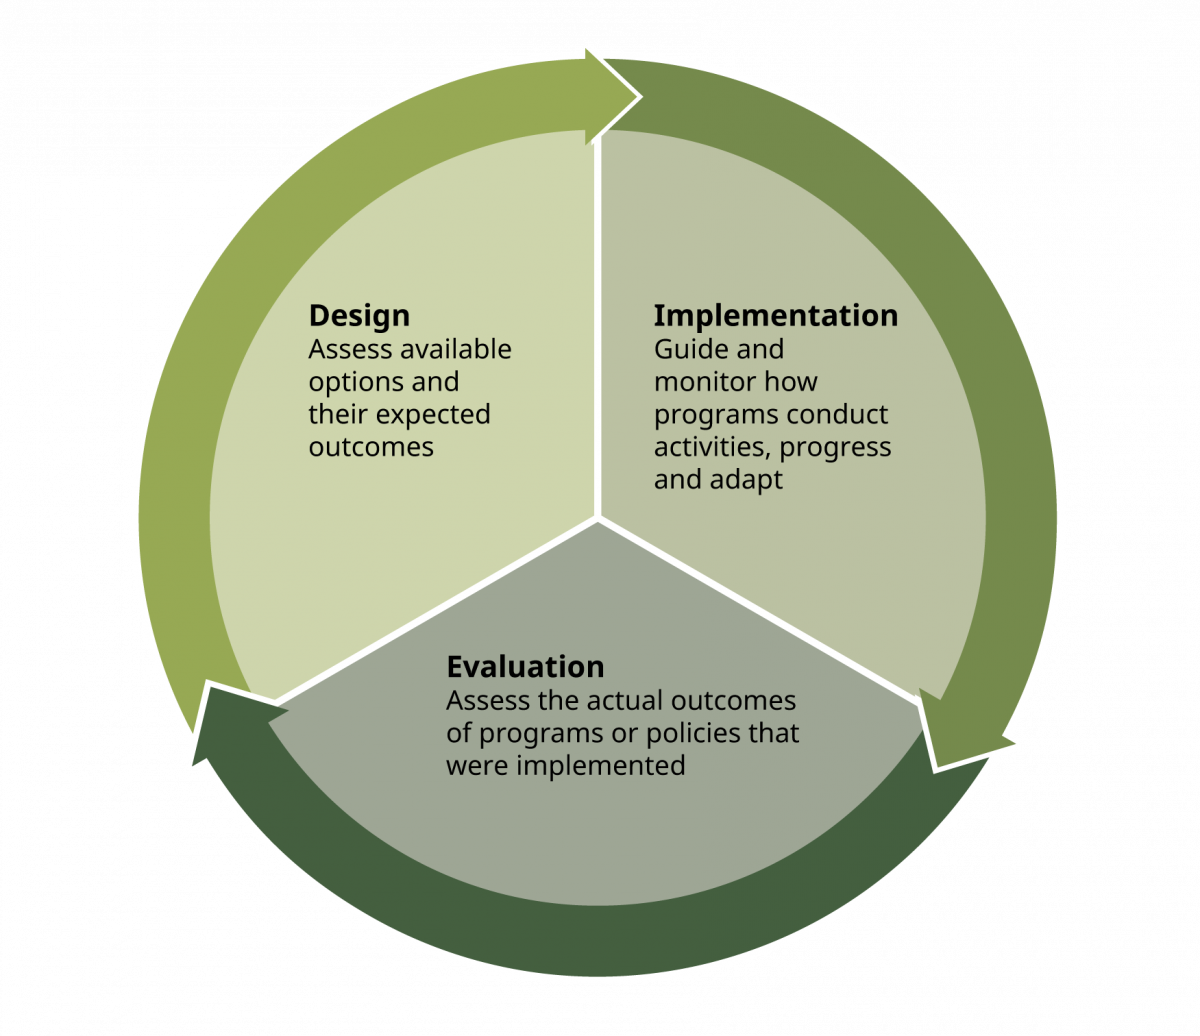 A wheel showing design, implementation and evaluation